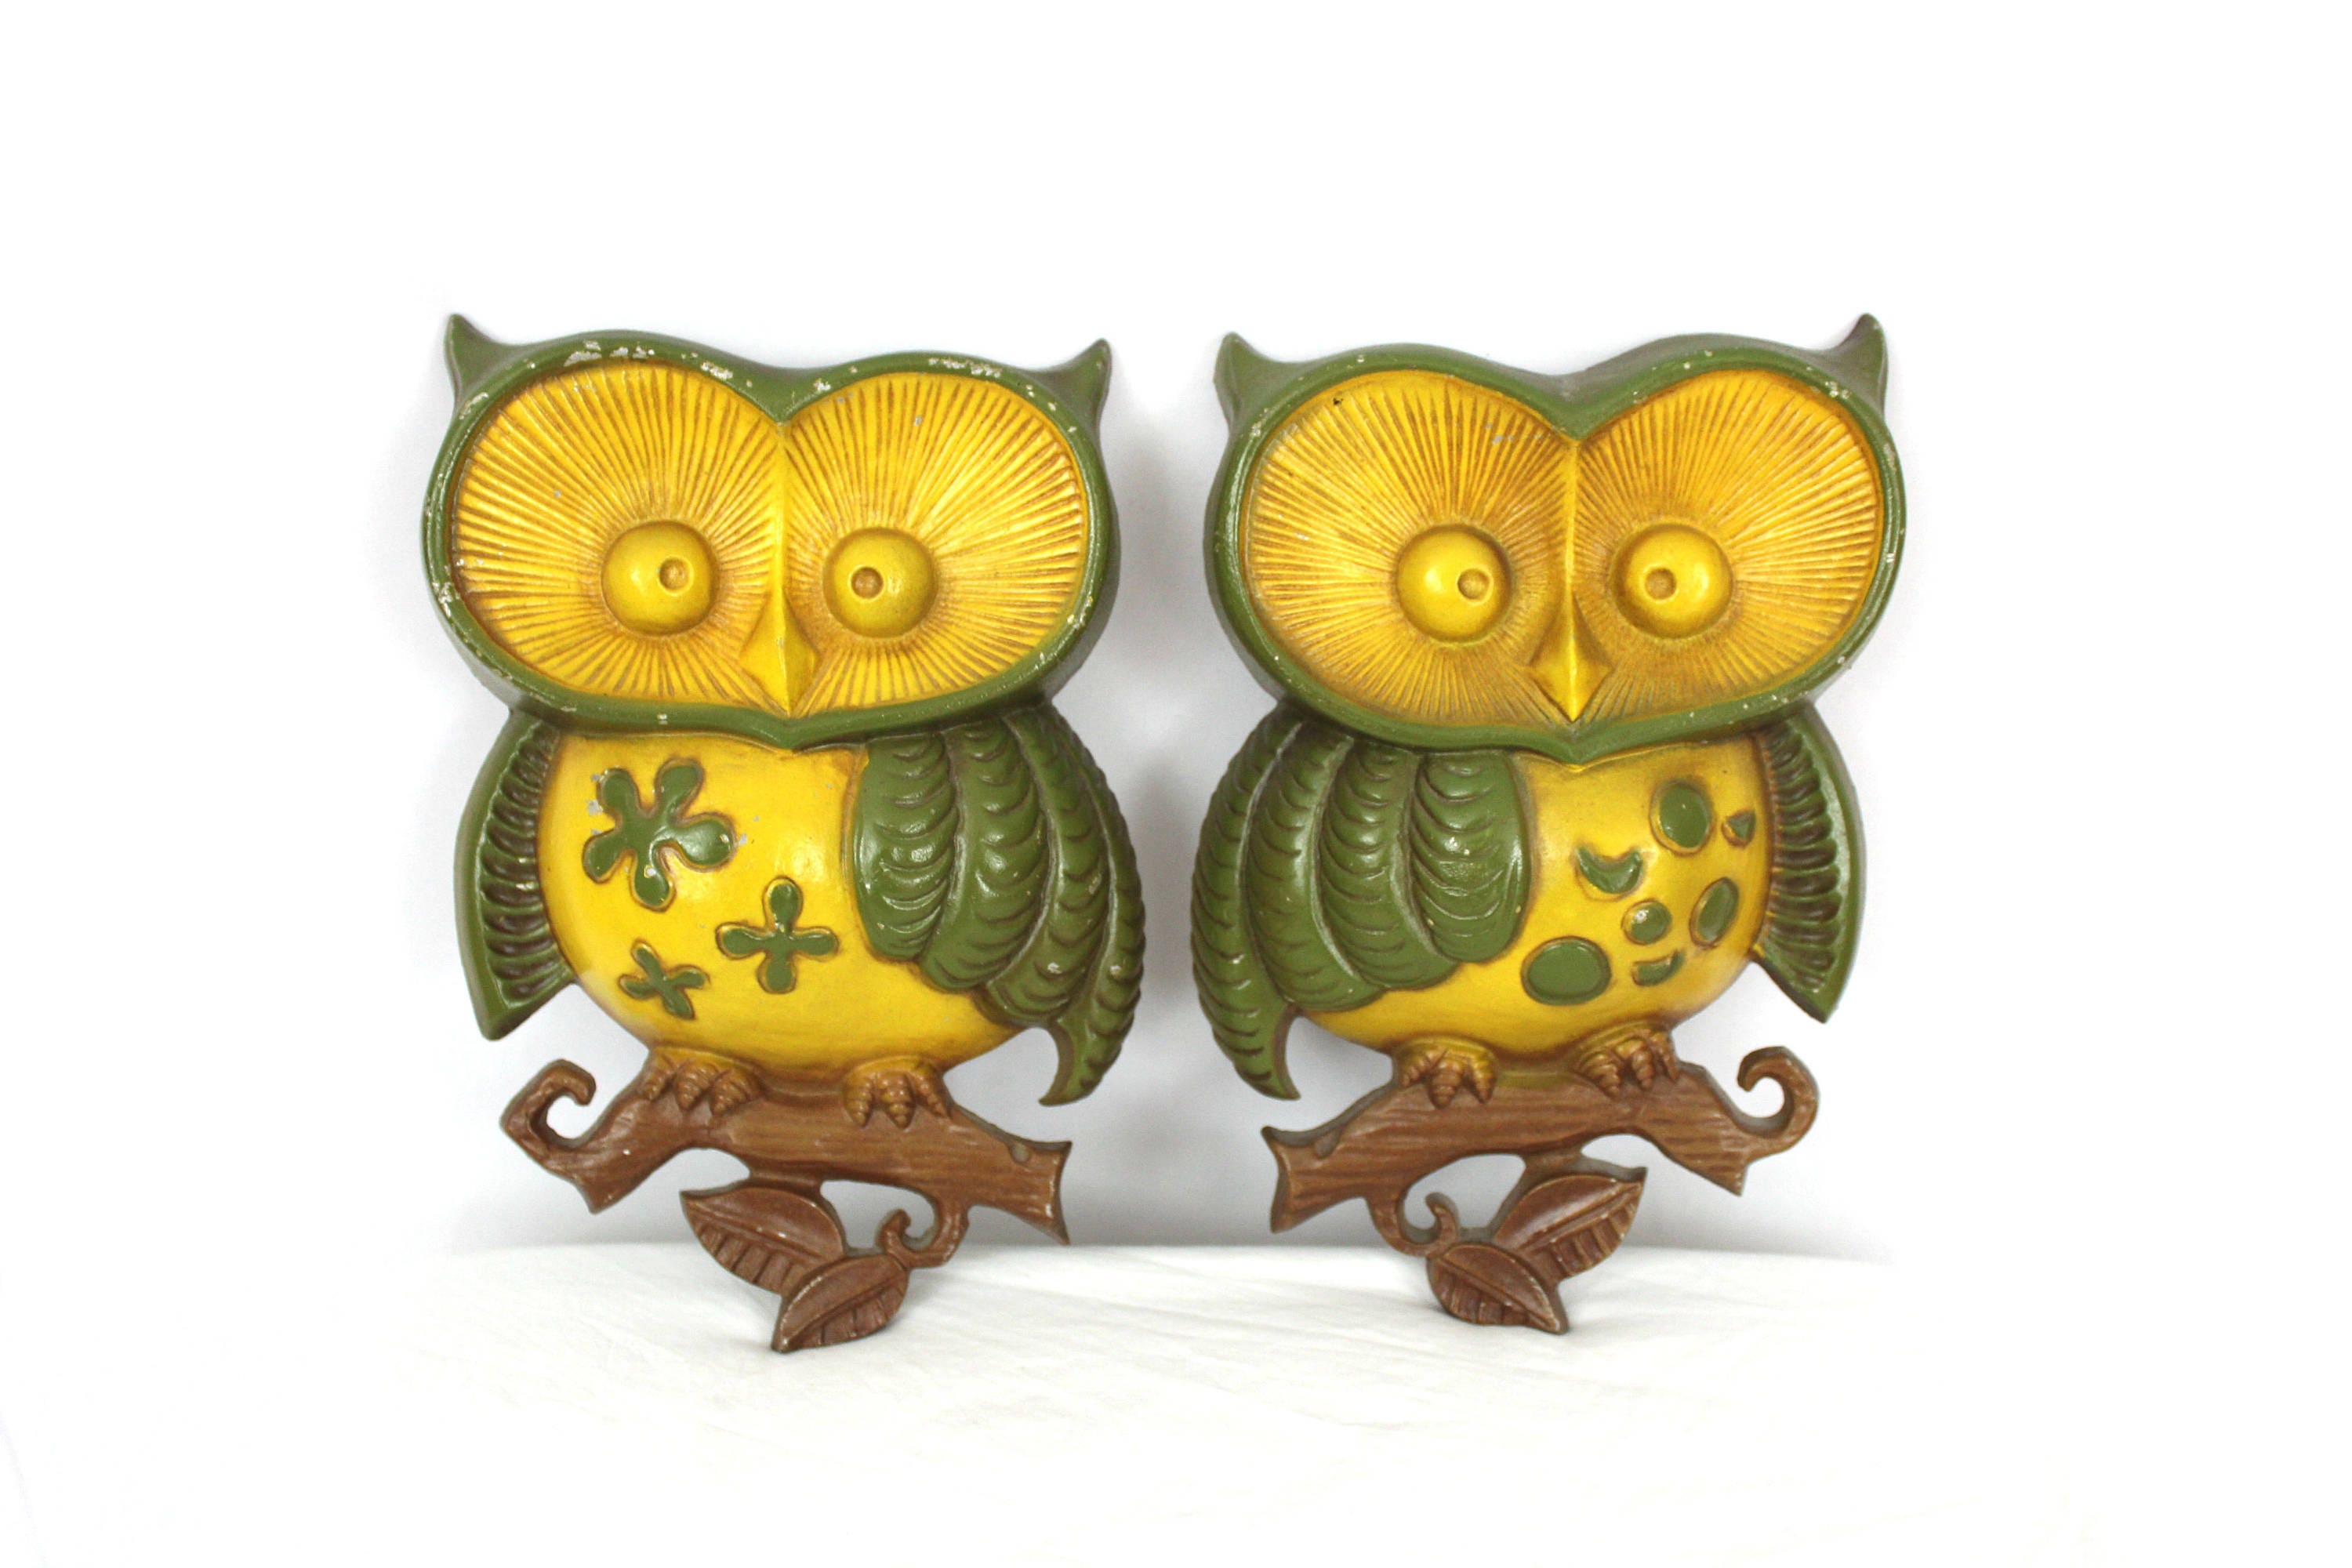 2 Vintage 70s Owl Wall Ornaments. Retro Green Yellow 70s Owl Home ...